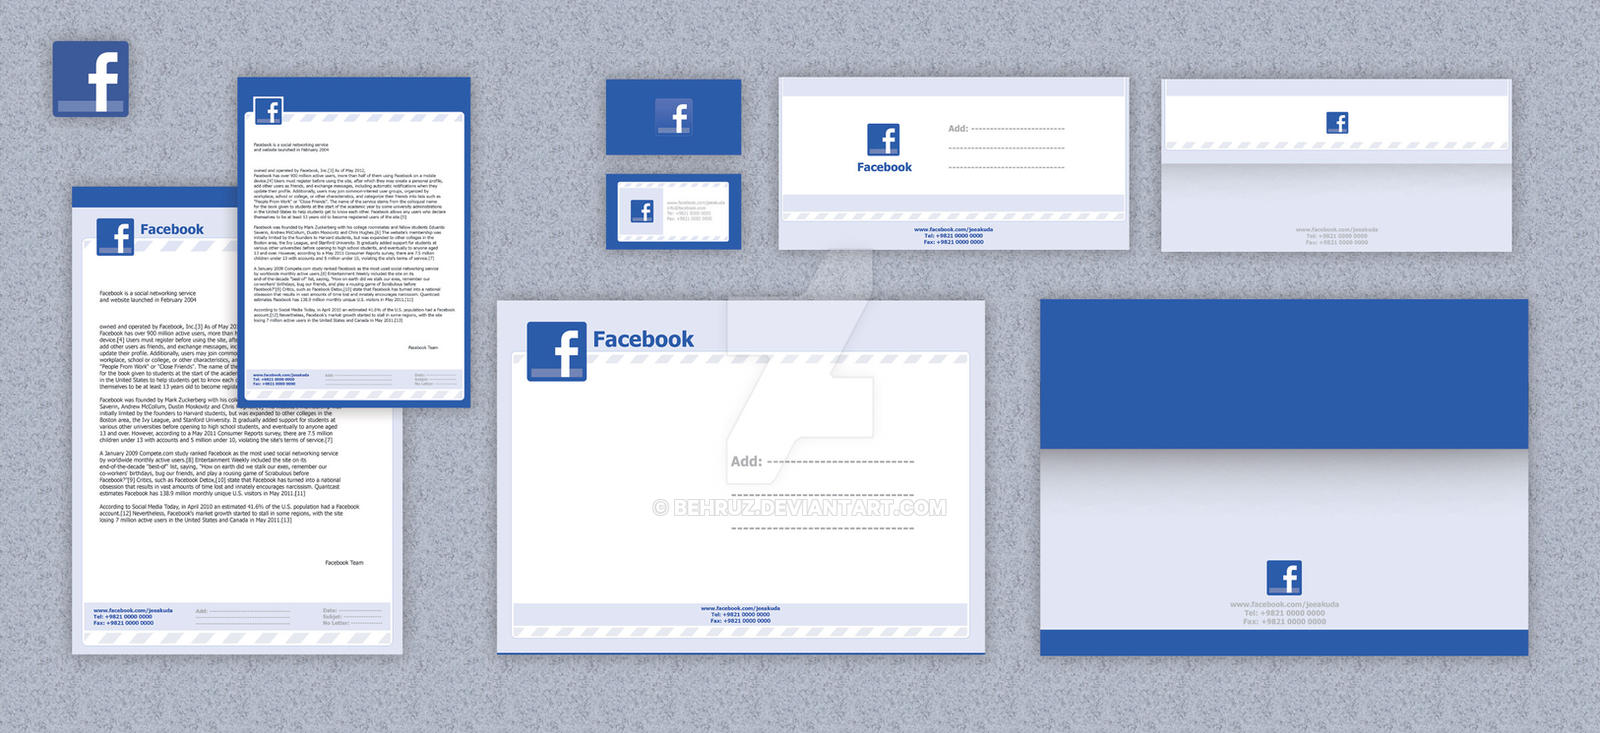 Facebook Letterhead design by behruz